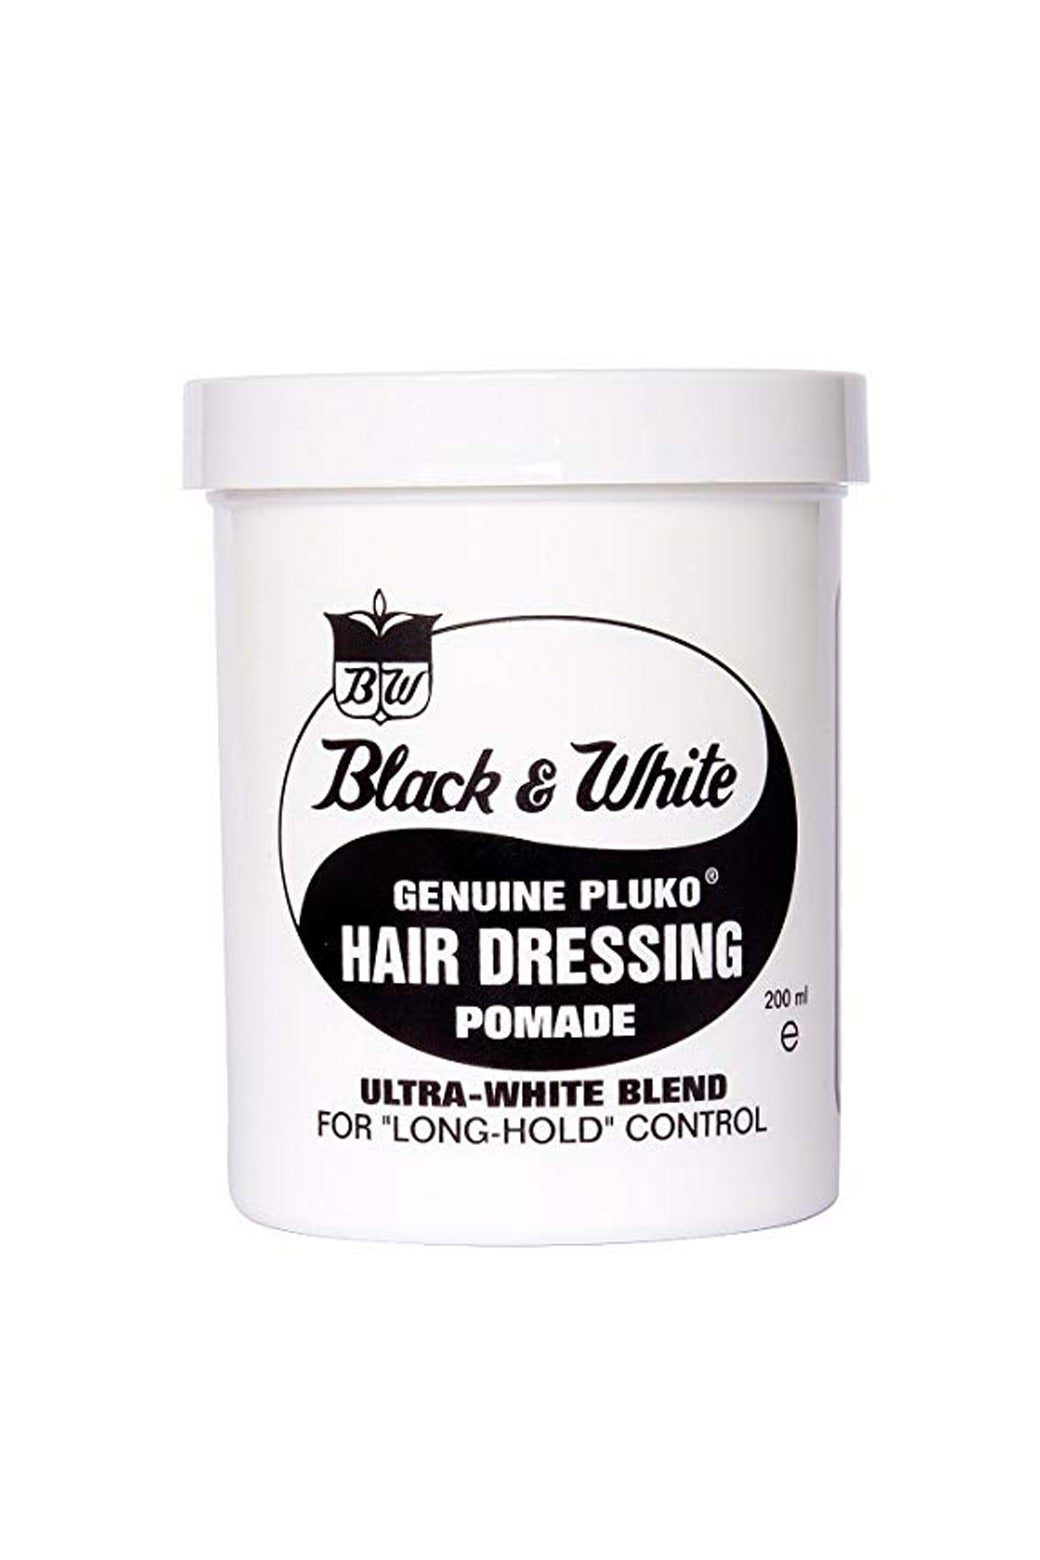 Black and White pomade.